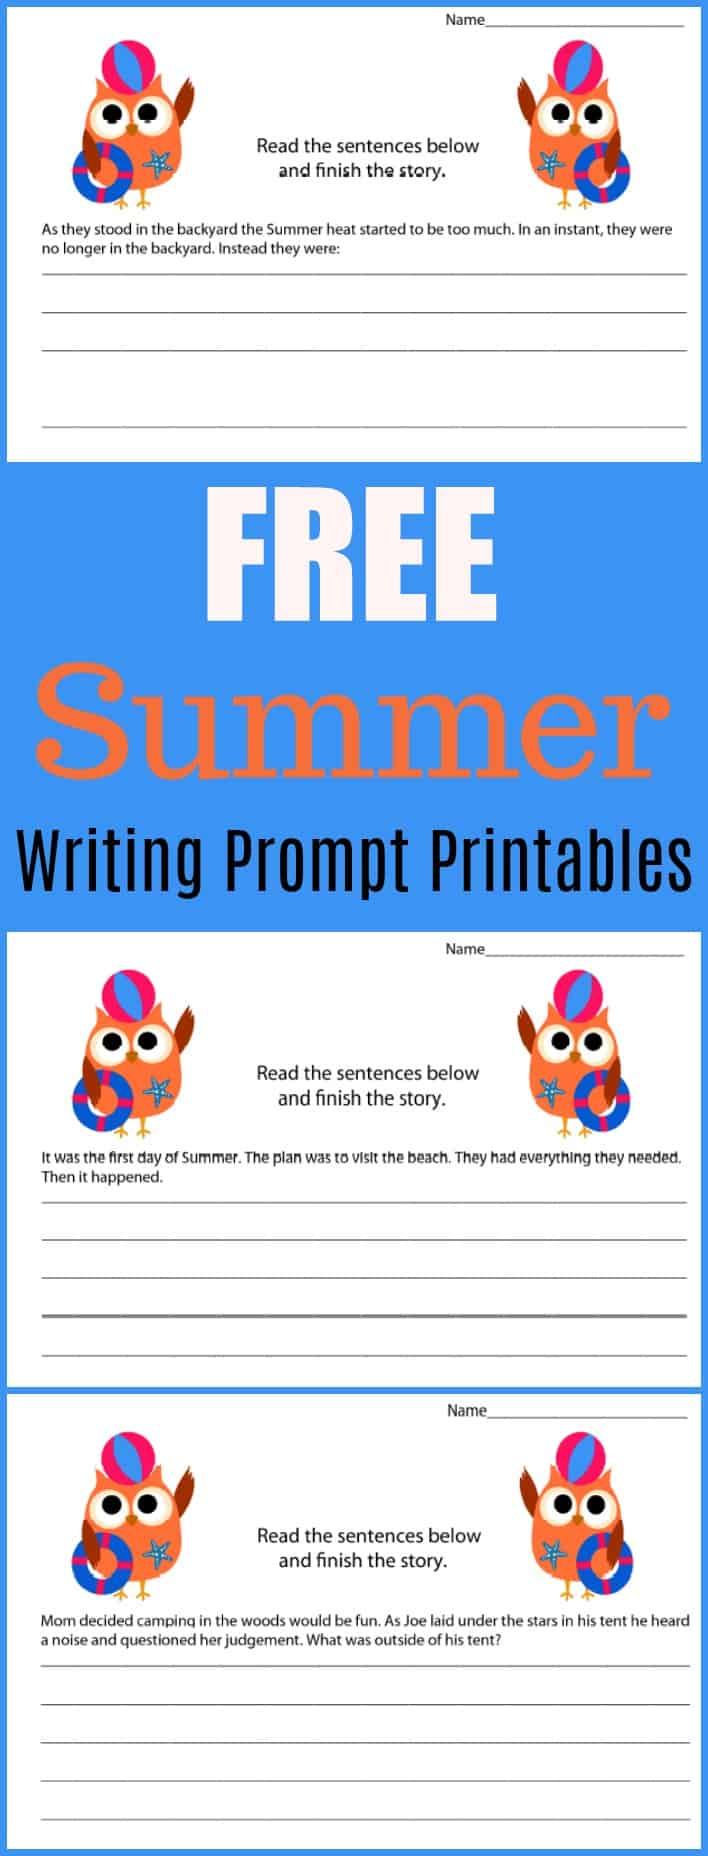 Free Summer Writing Prompt Printable - #writing #writingprompt #holiday #printable #freeprintable #education #edchat #homeschool #homeschooling #summer